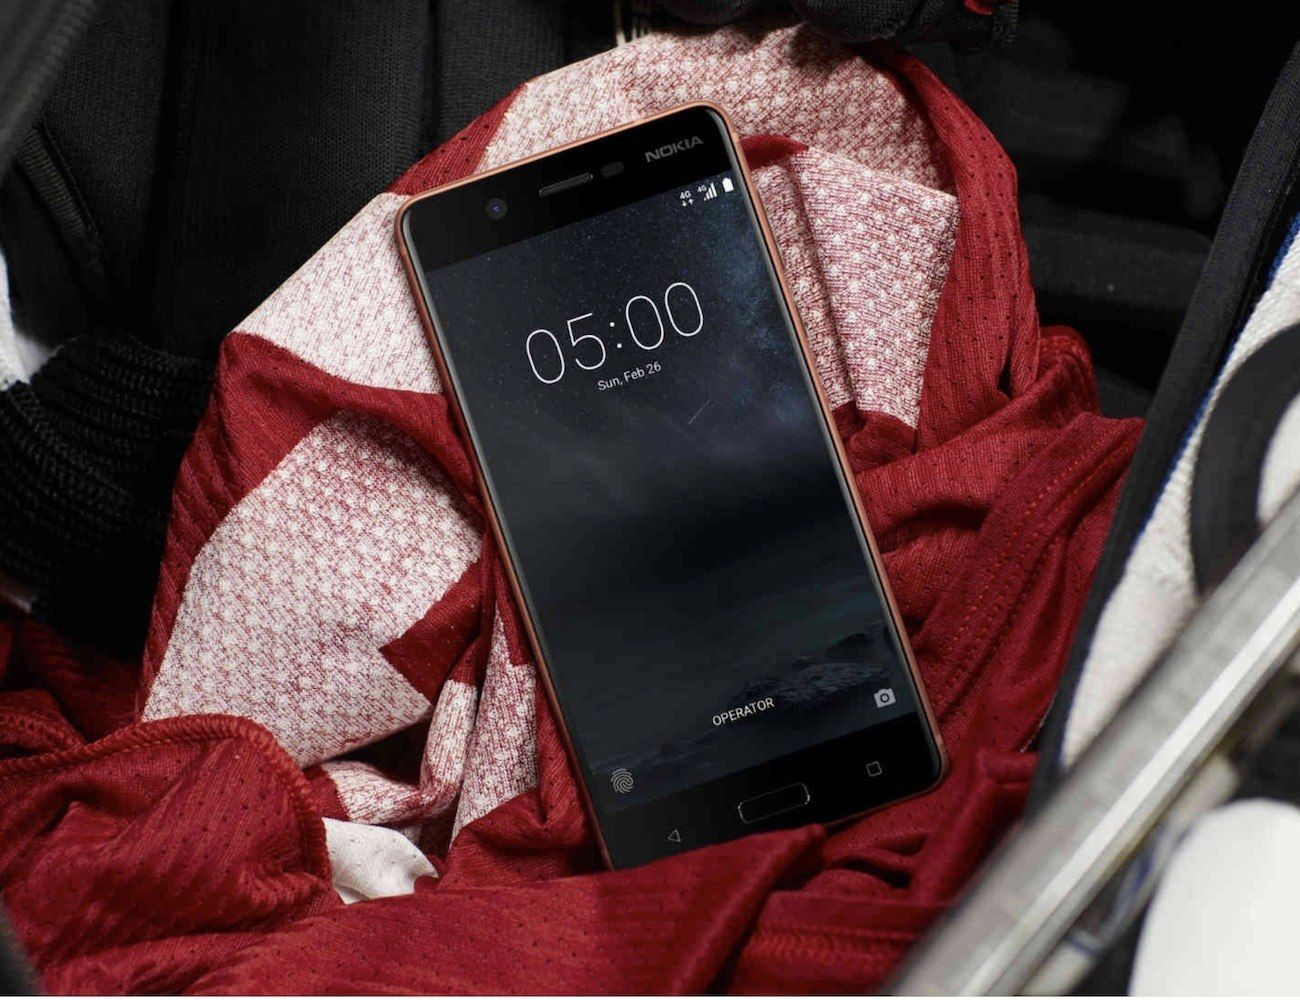 Nokia 5 sleek android smartphone with images